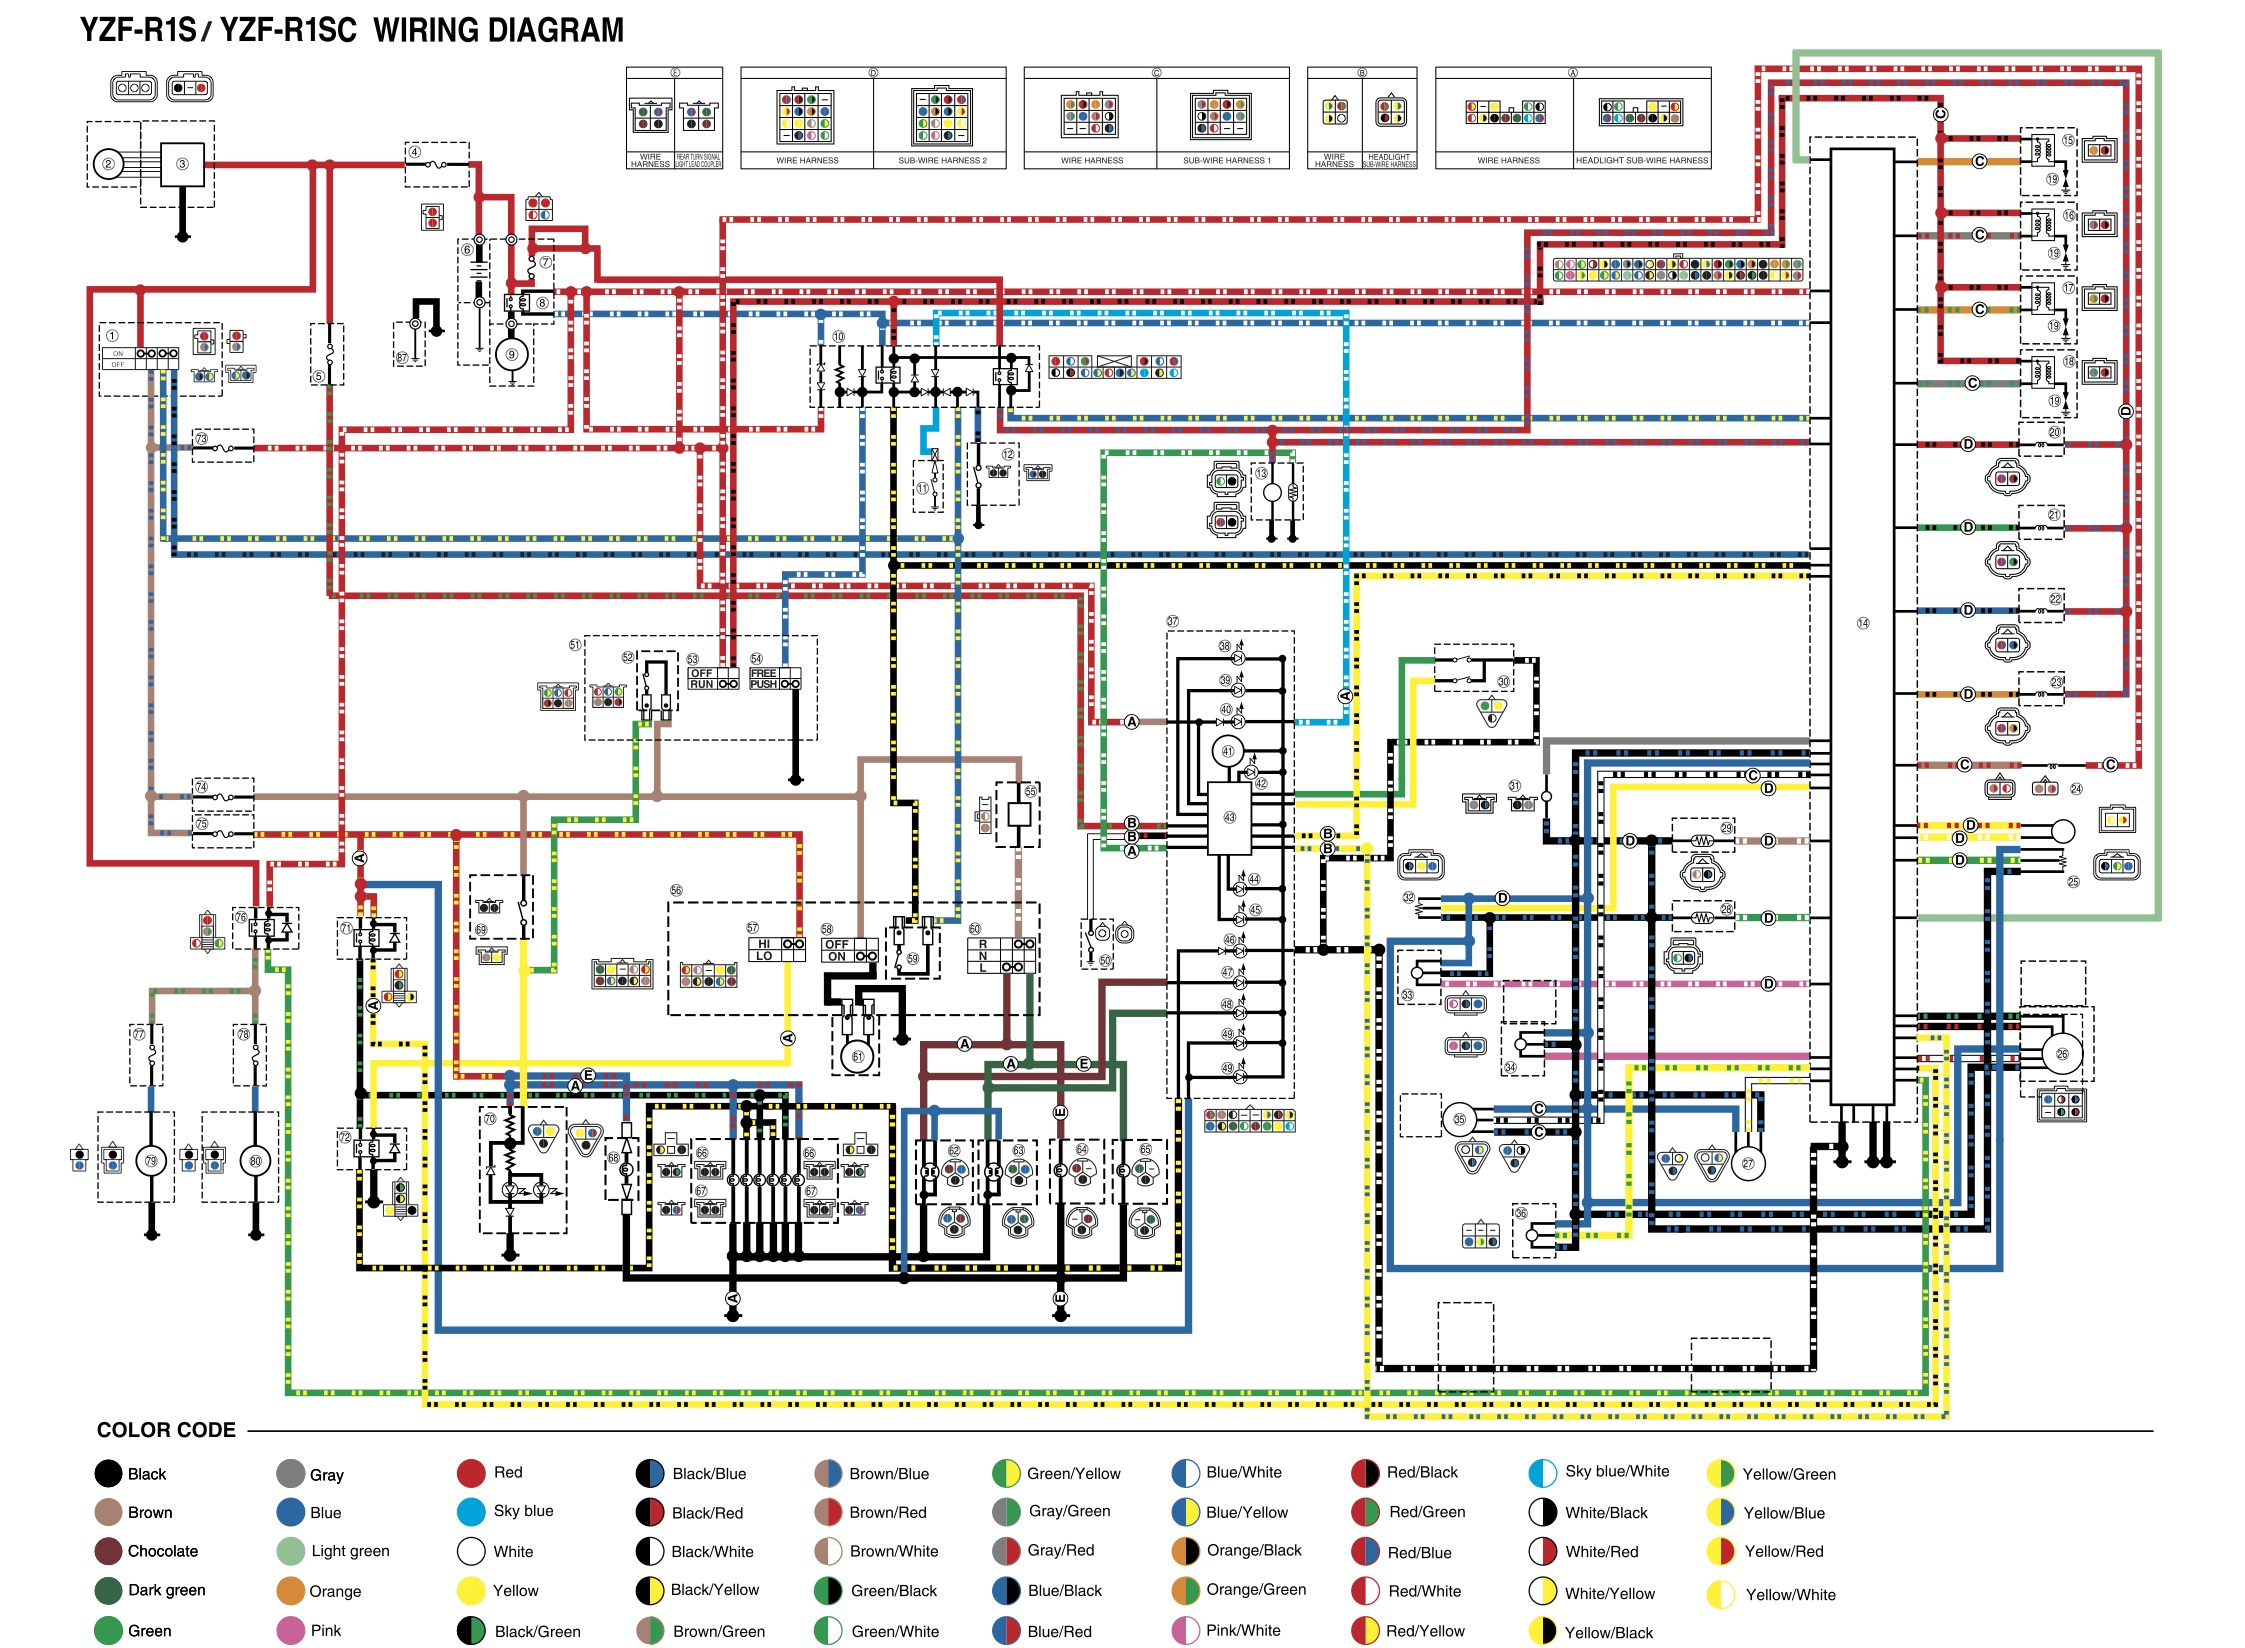 04R1_wiring_diagram r1 wiring help 2007 yamaha r1 wiring diagram at mifinder.co